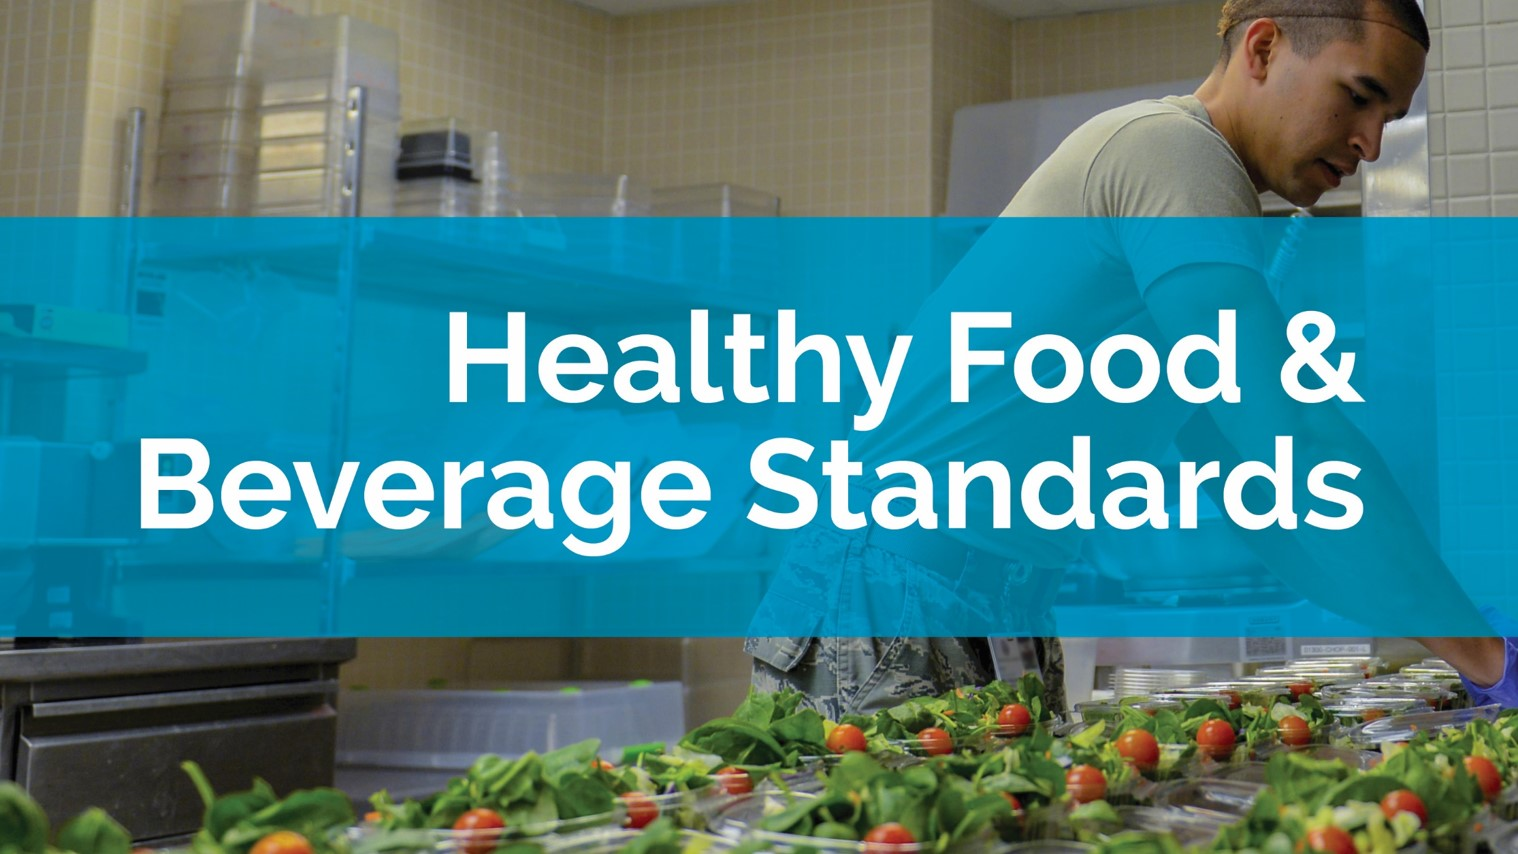 Healthy Food & Beverage Standards